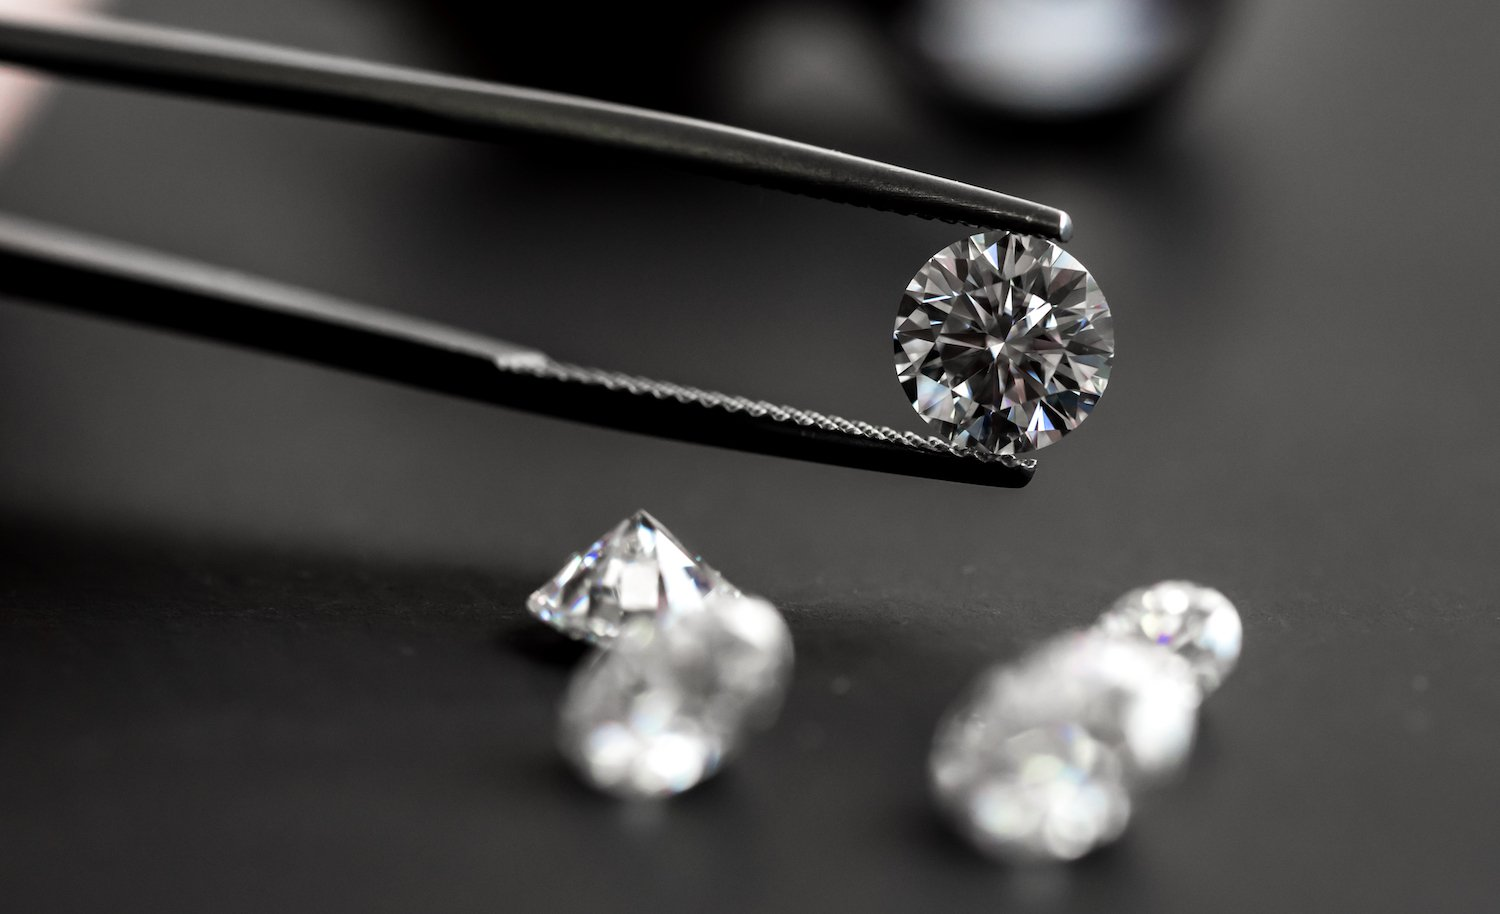 Blockchains Are Forever? Diamond Giant De Beers Unveils DLT Strategy